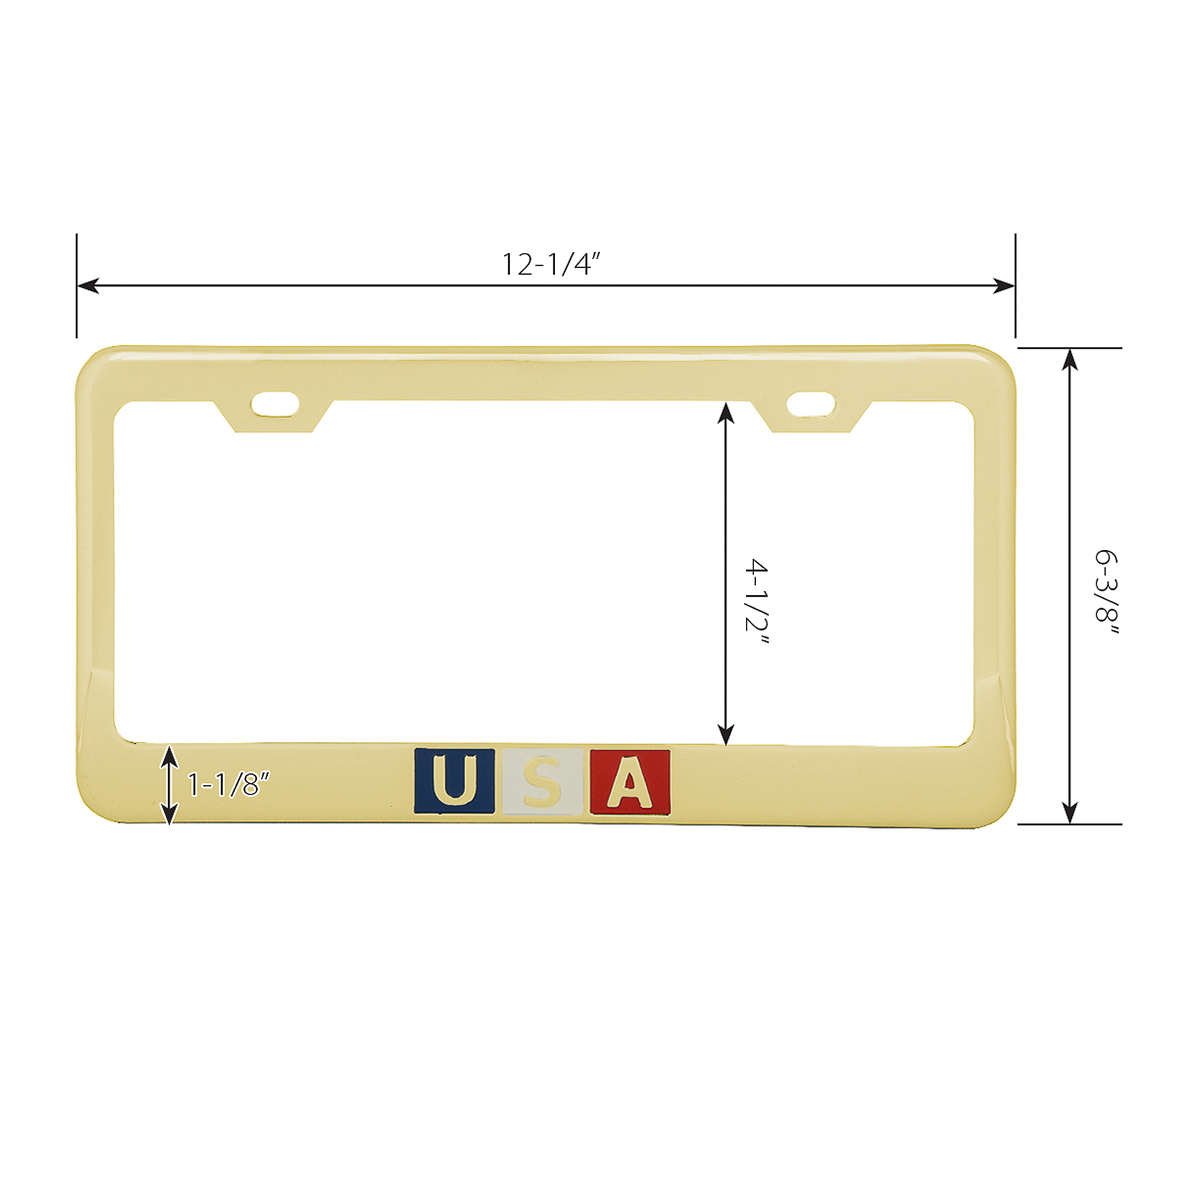 Brass-Plated (Gold Color) USA License Plate Frame - Measurements